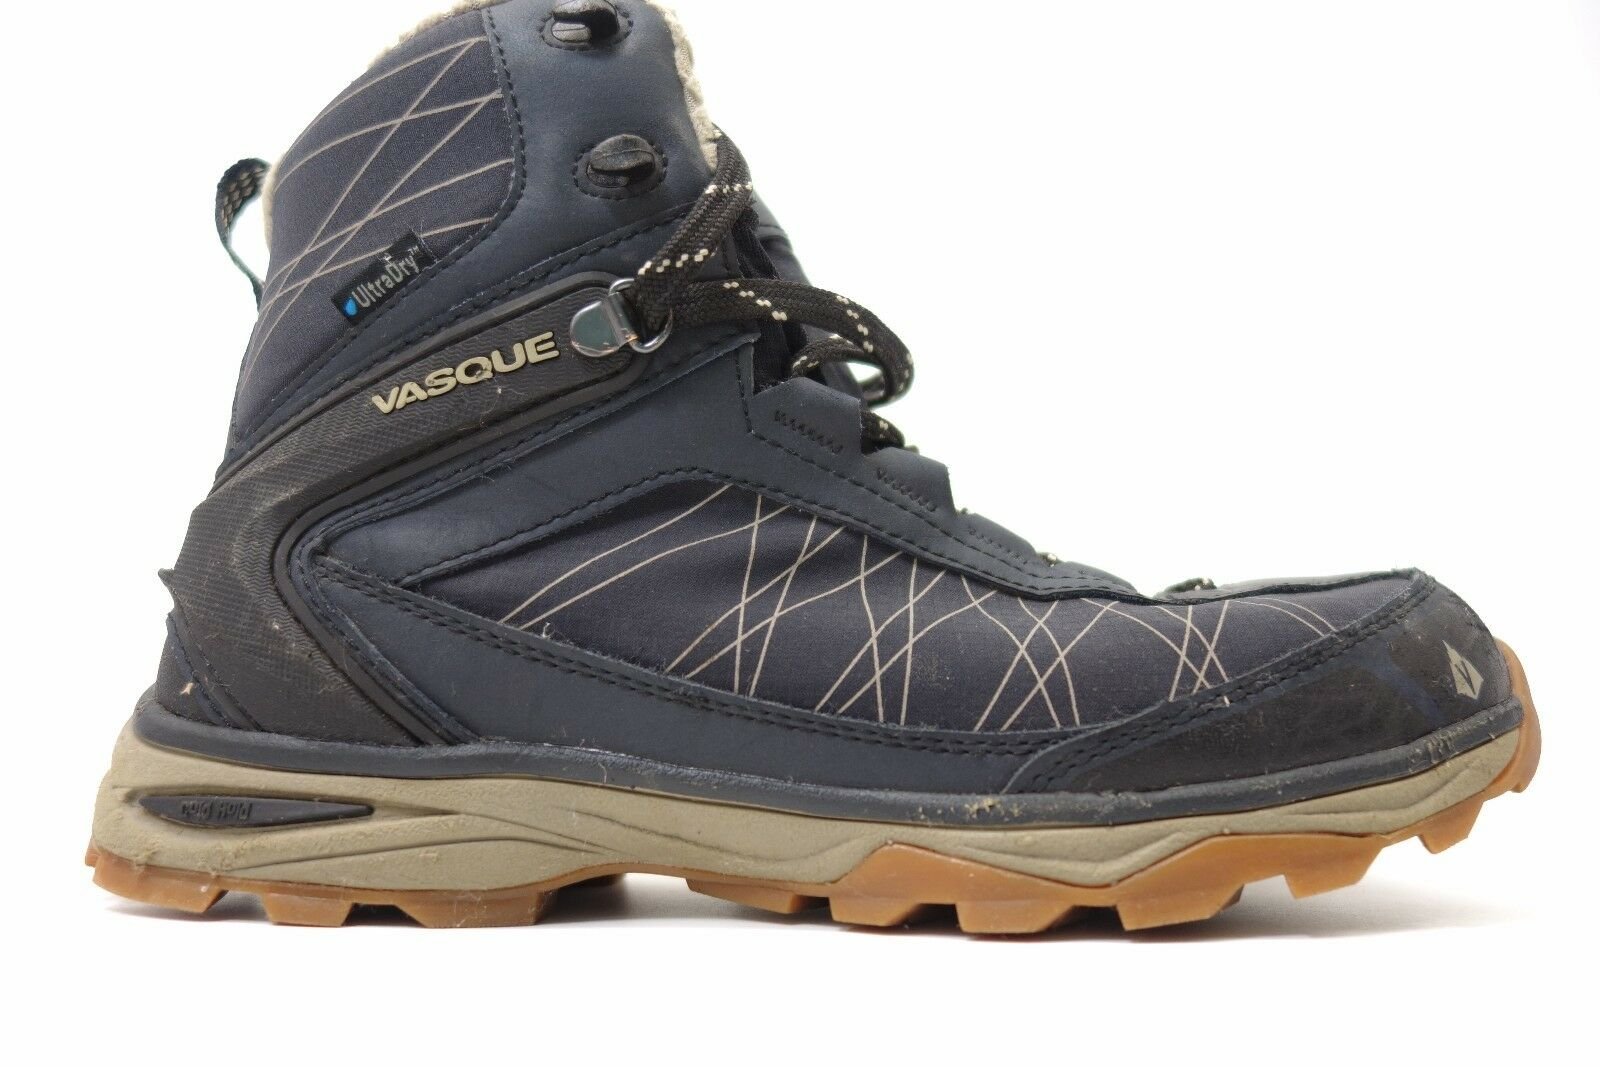 Vasque Womens Coldspark Ultradry Waterproof Insulated Mid Snow Boots Size 9